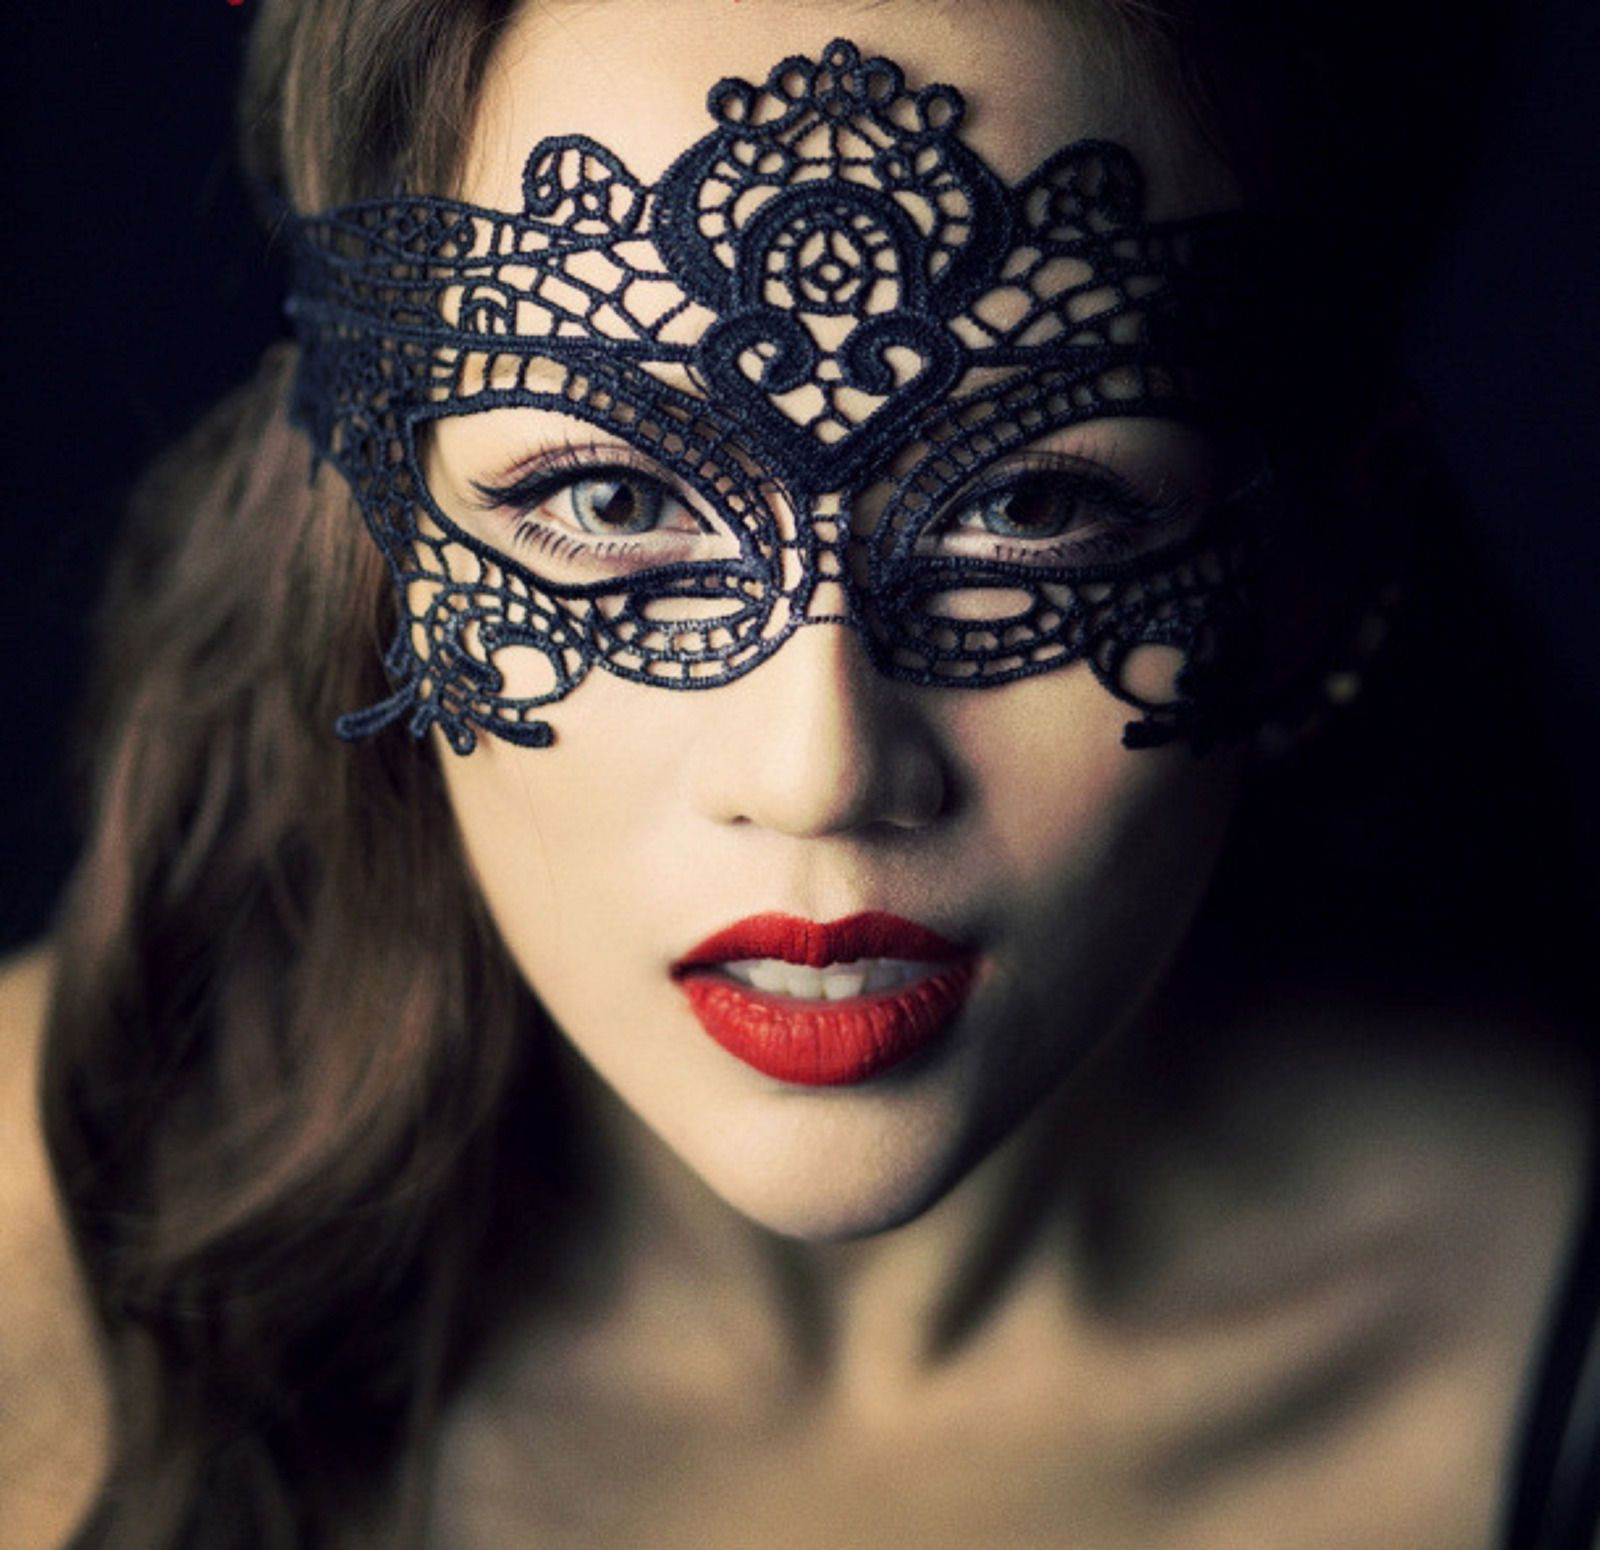 black sexy women victorian halloween costume party masquerade mask - Halloween Costumes With A Masquerade Mask